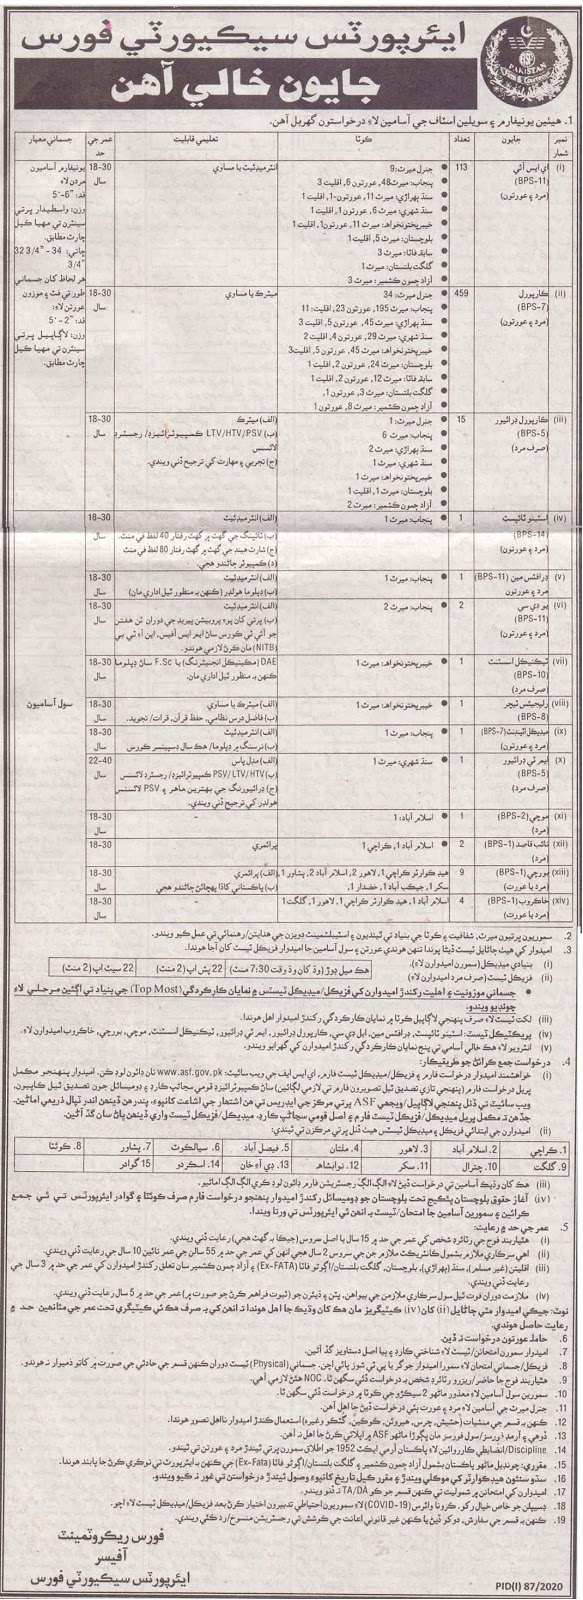 611 Posts in ASF Foundation Karachi Jobs 2020 for ASI, Corporal, Steno typist, UDC and more